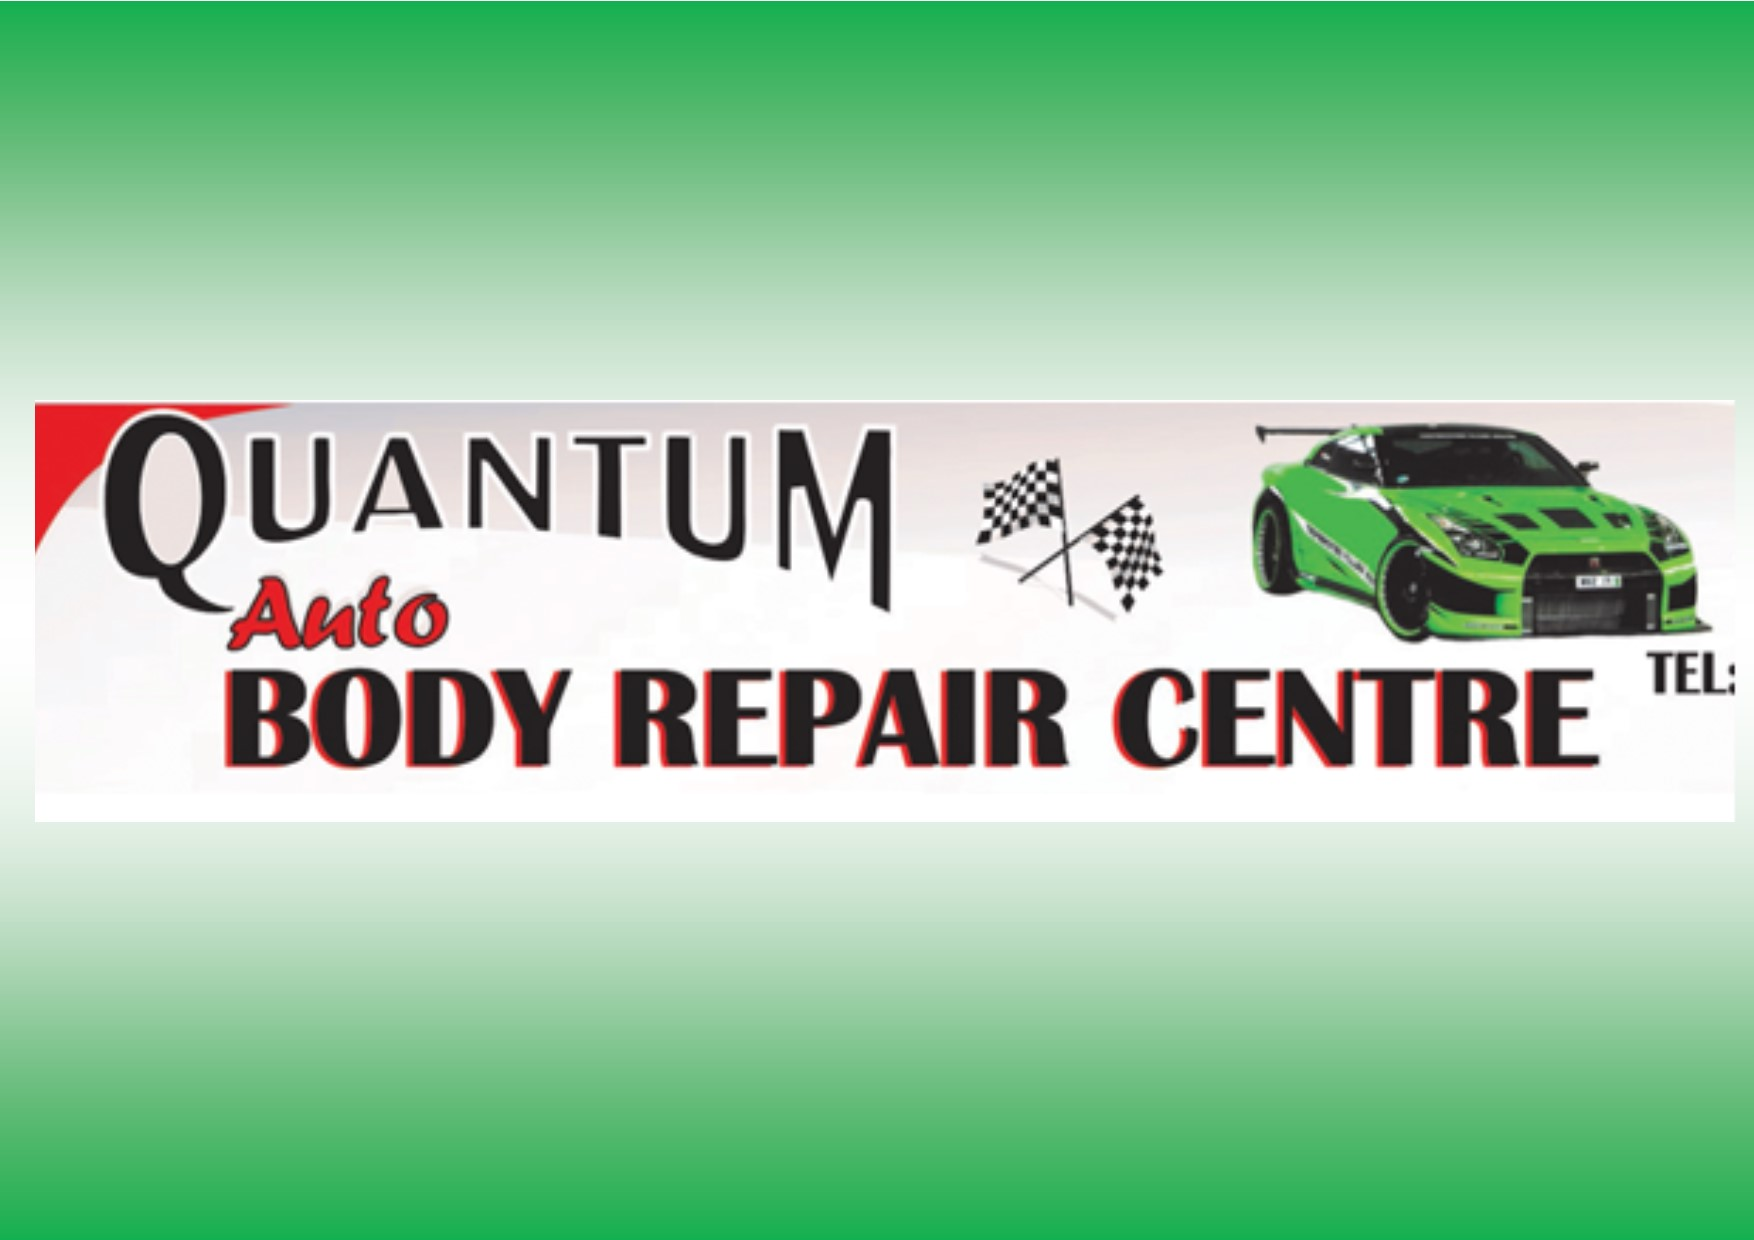 Logo of Quantum Auto Body Repair Centre